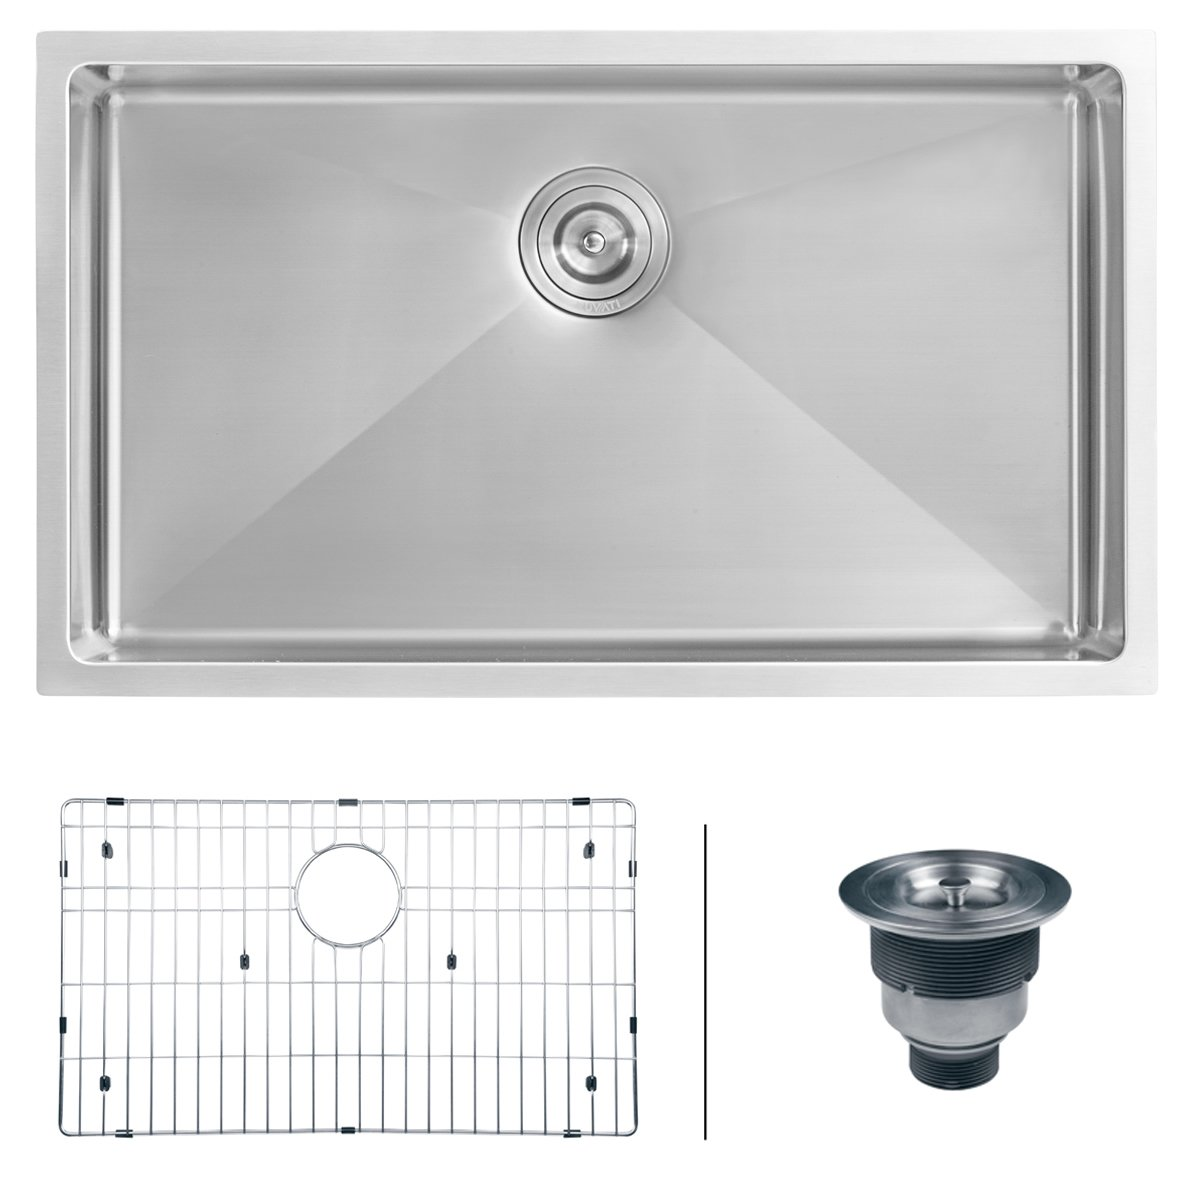 Ruvati 30 Inch Undermount 16 Gauge Tight Radius Kitchen Sink Stainless  Steel Single Bowl   RVH7300     Amazon.com